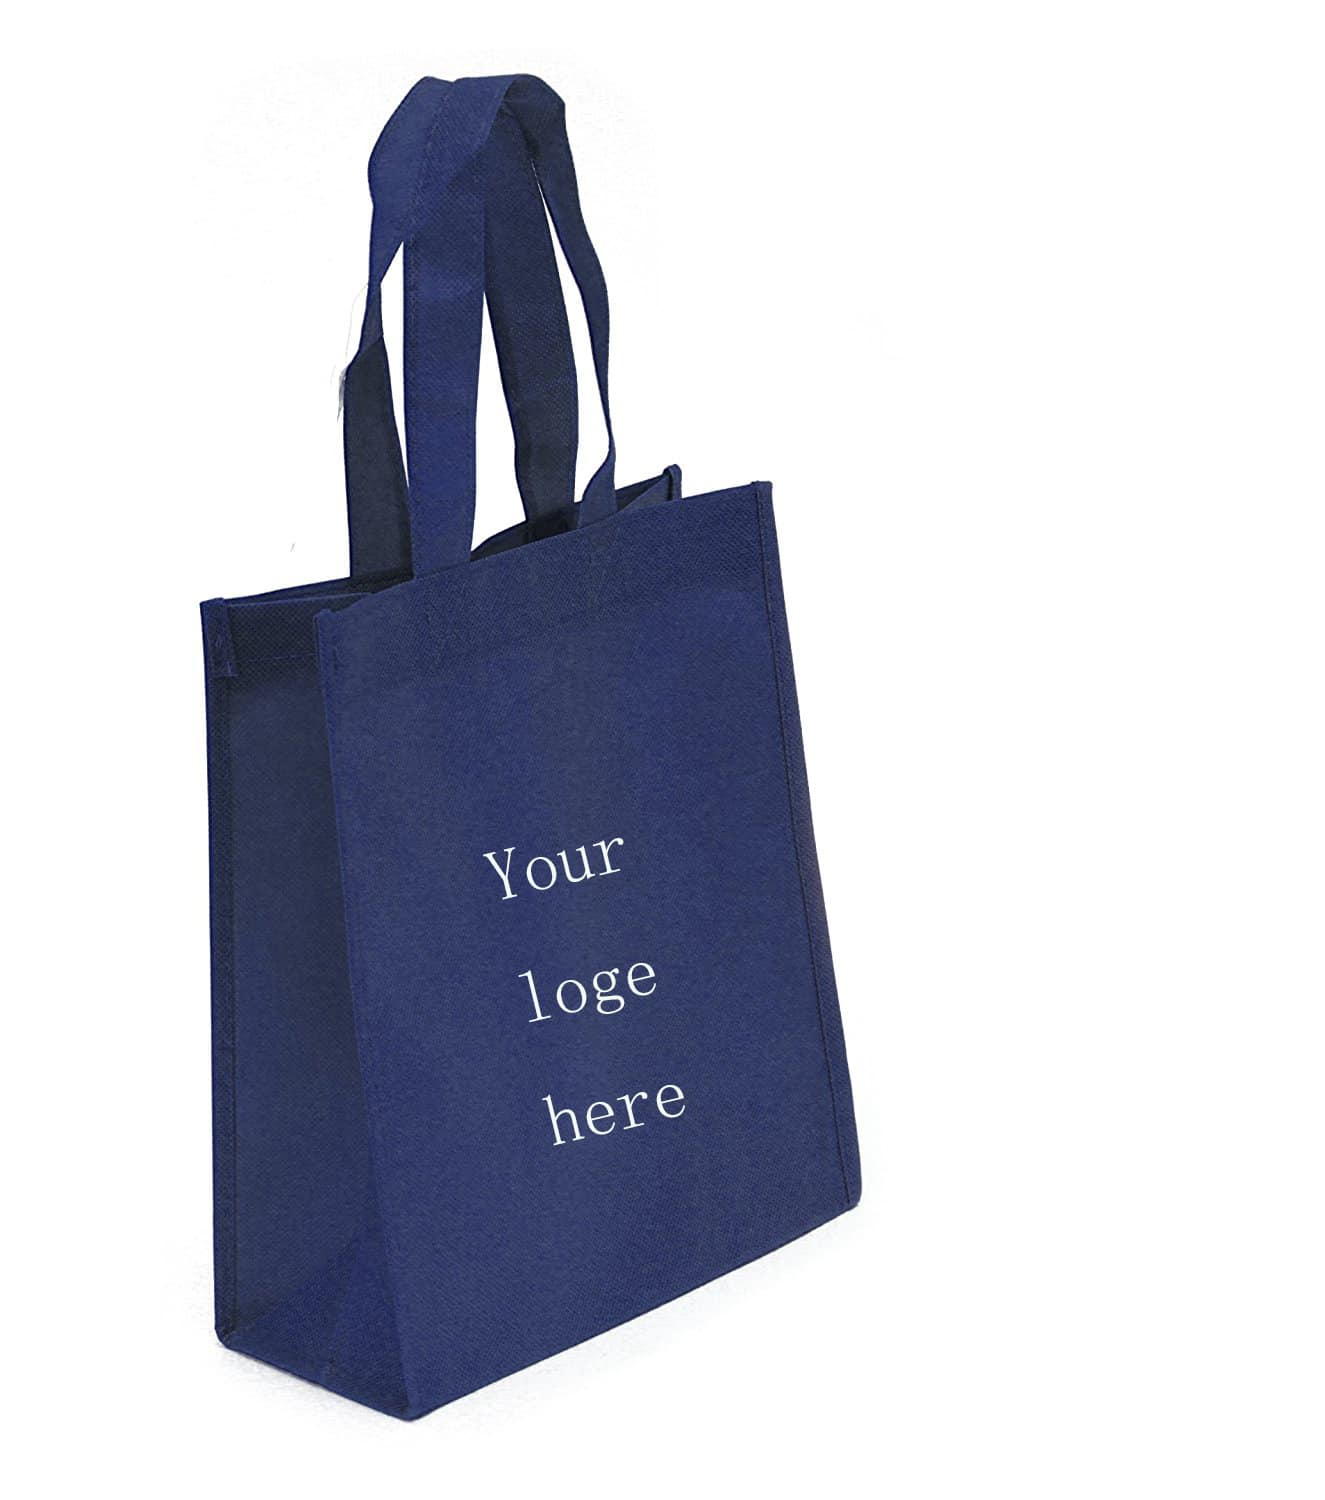 Facroty direct pormotion tote bags